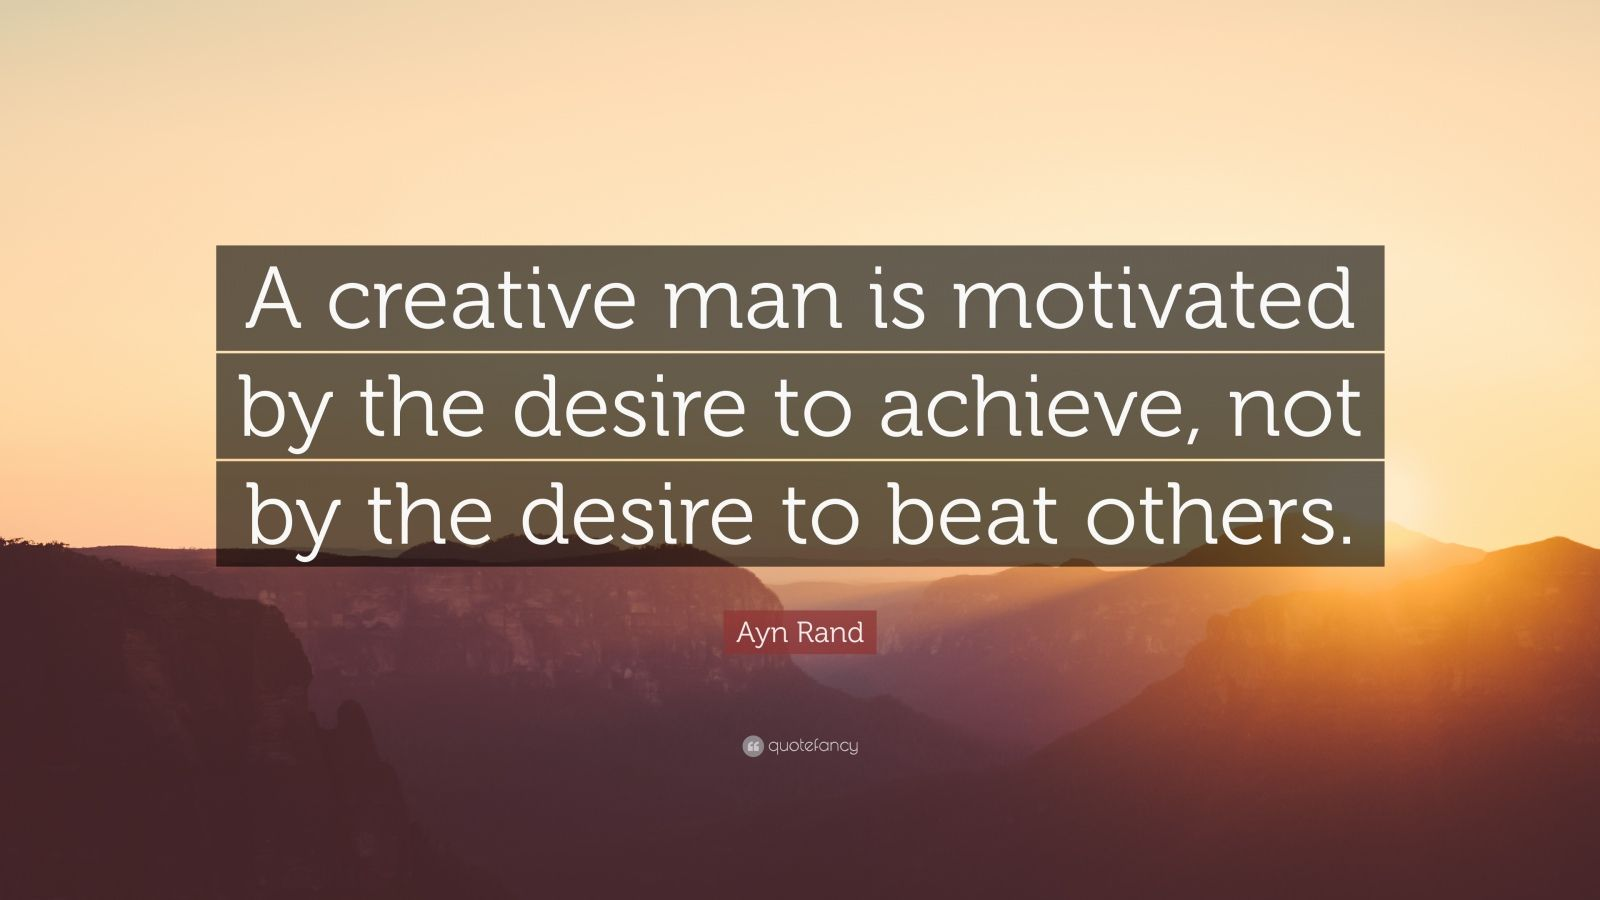 Shakespeare Wallpapers With Quotes Ayn Rand Quote A Creative Man Is Motivated By The Desire